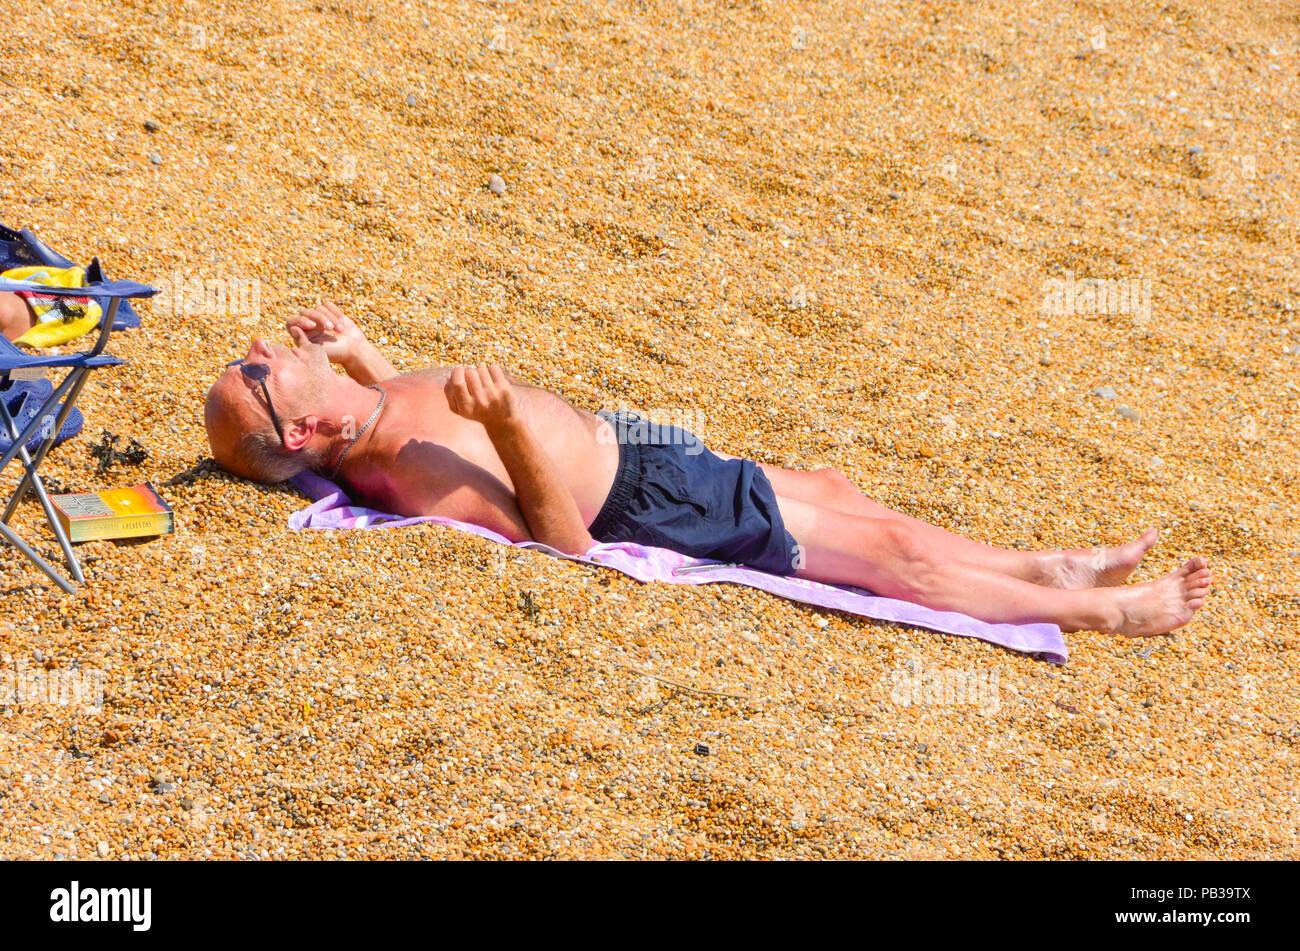 West Bay, Dorset, UK.  26th July 2018. UK Weather.  A sunbather on the beach at the seaside resort of West Bay in Dorset enjoying the hot sunshine as the heatwave continues.  Picture Credit: Graham Hunt/Alamy Live News - Stock Image